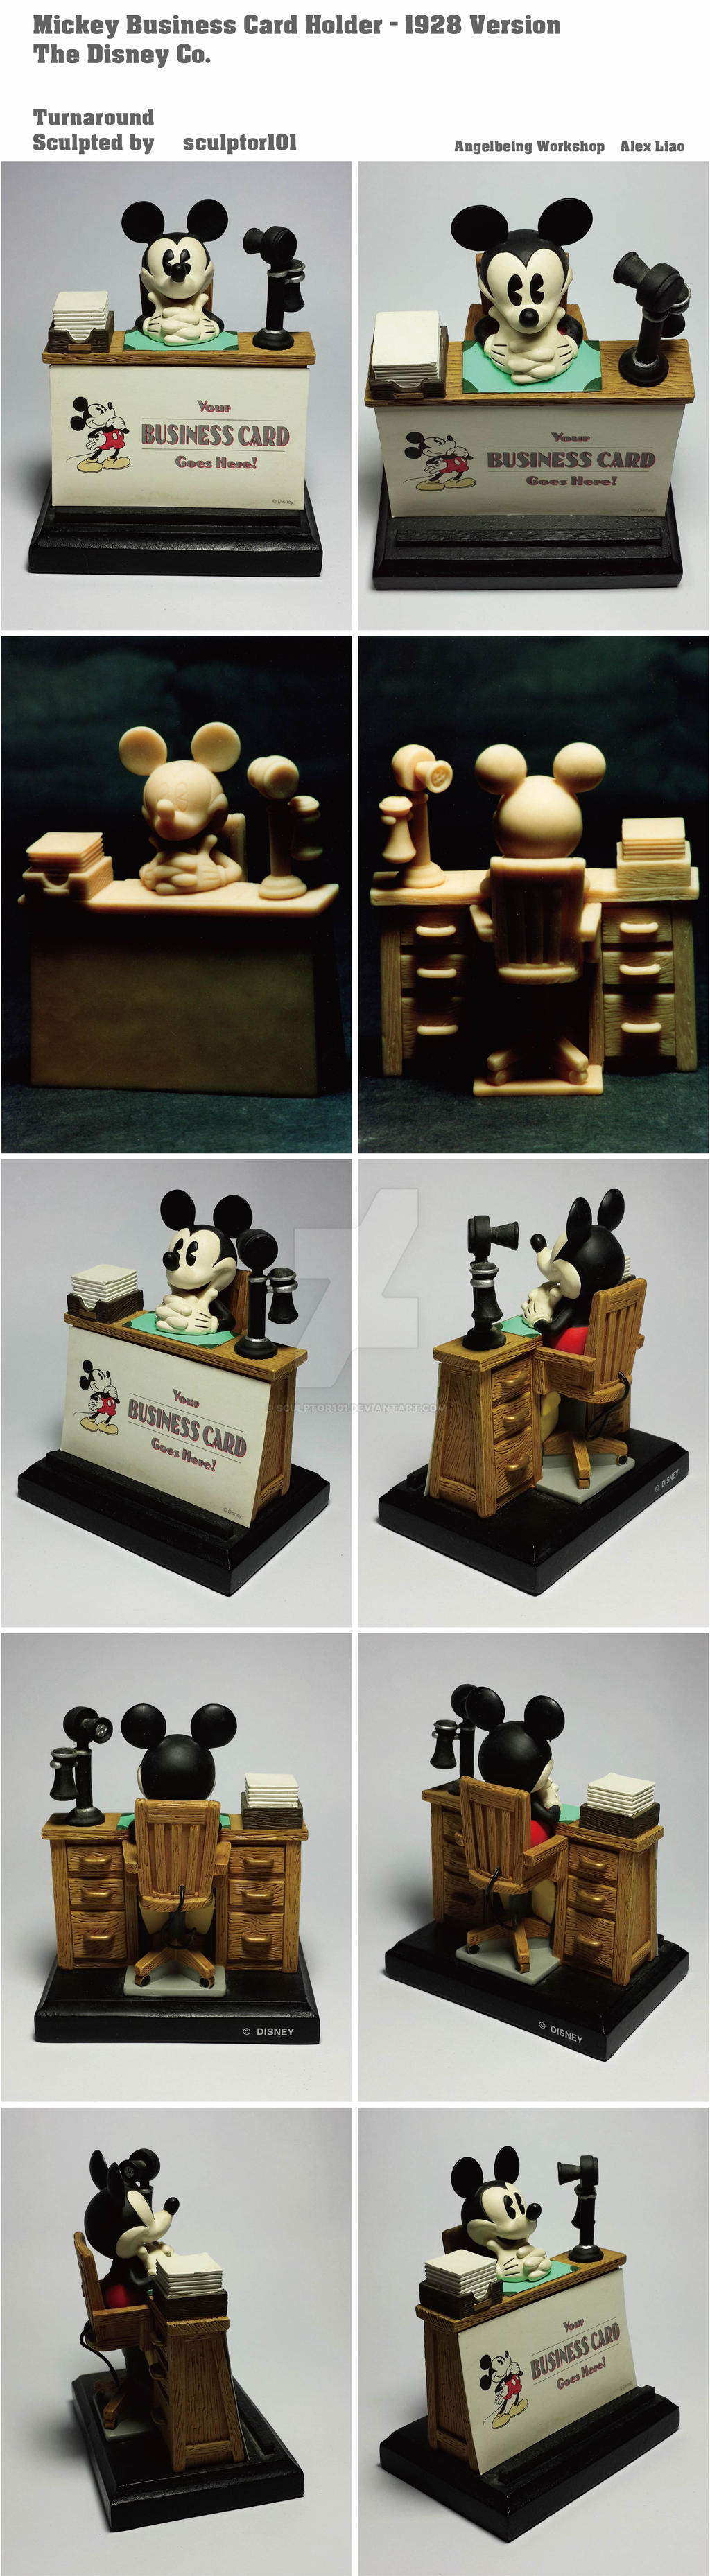 Mickey business card holder 1928 version by sculptor101 on deviantart mickey business card holder 1928 version by sculptor101 colourmoves